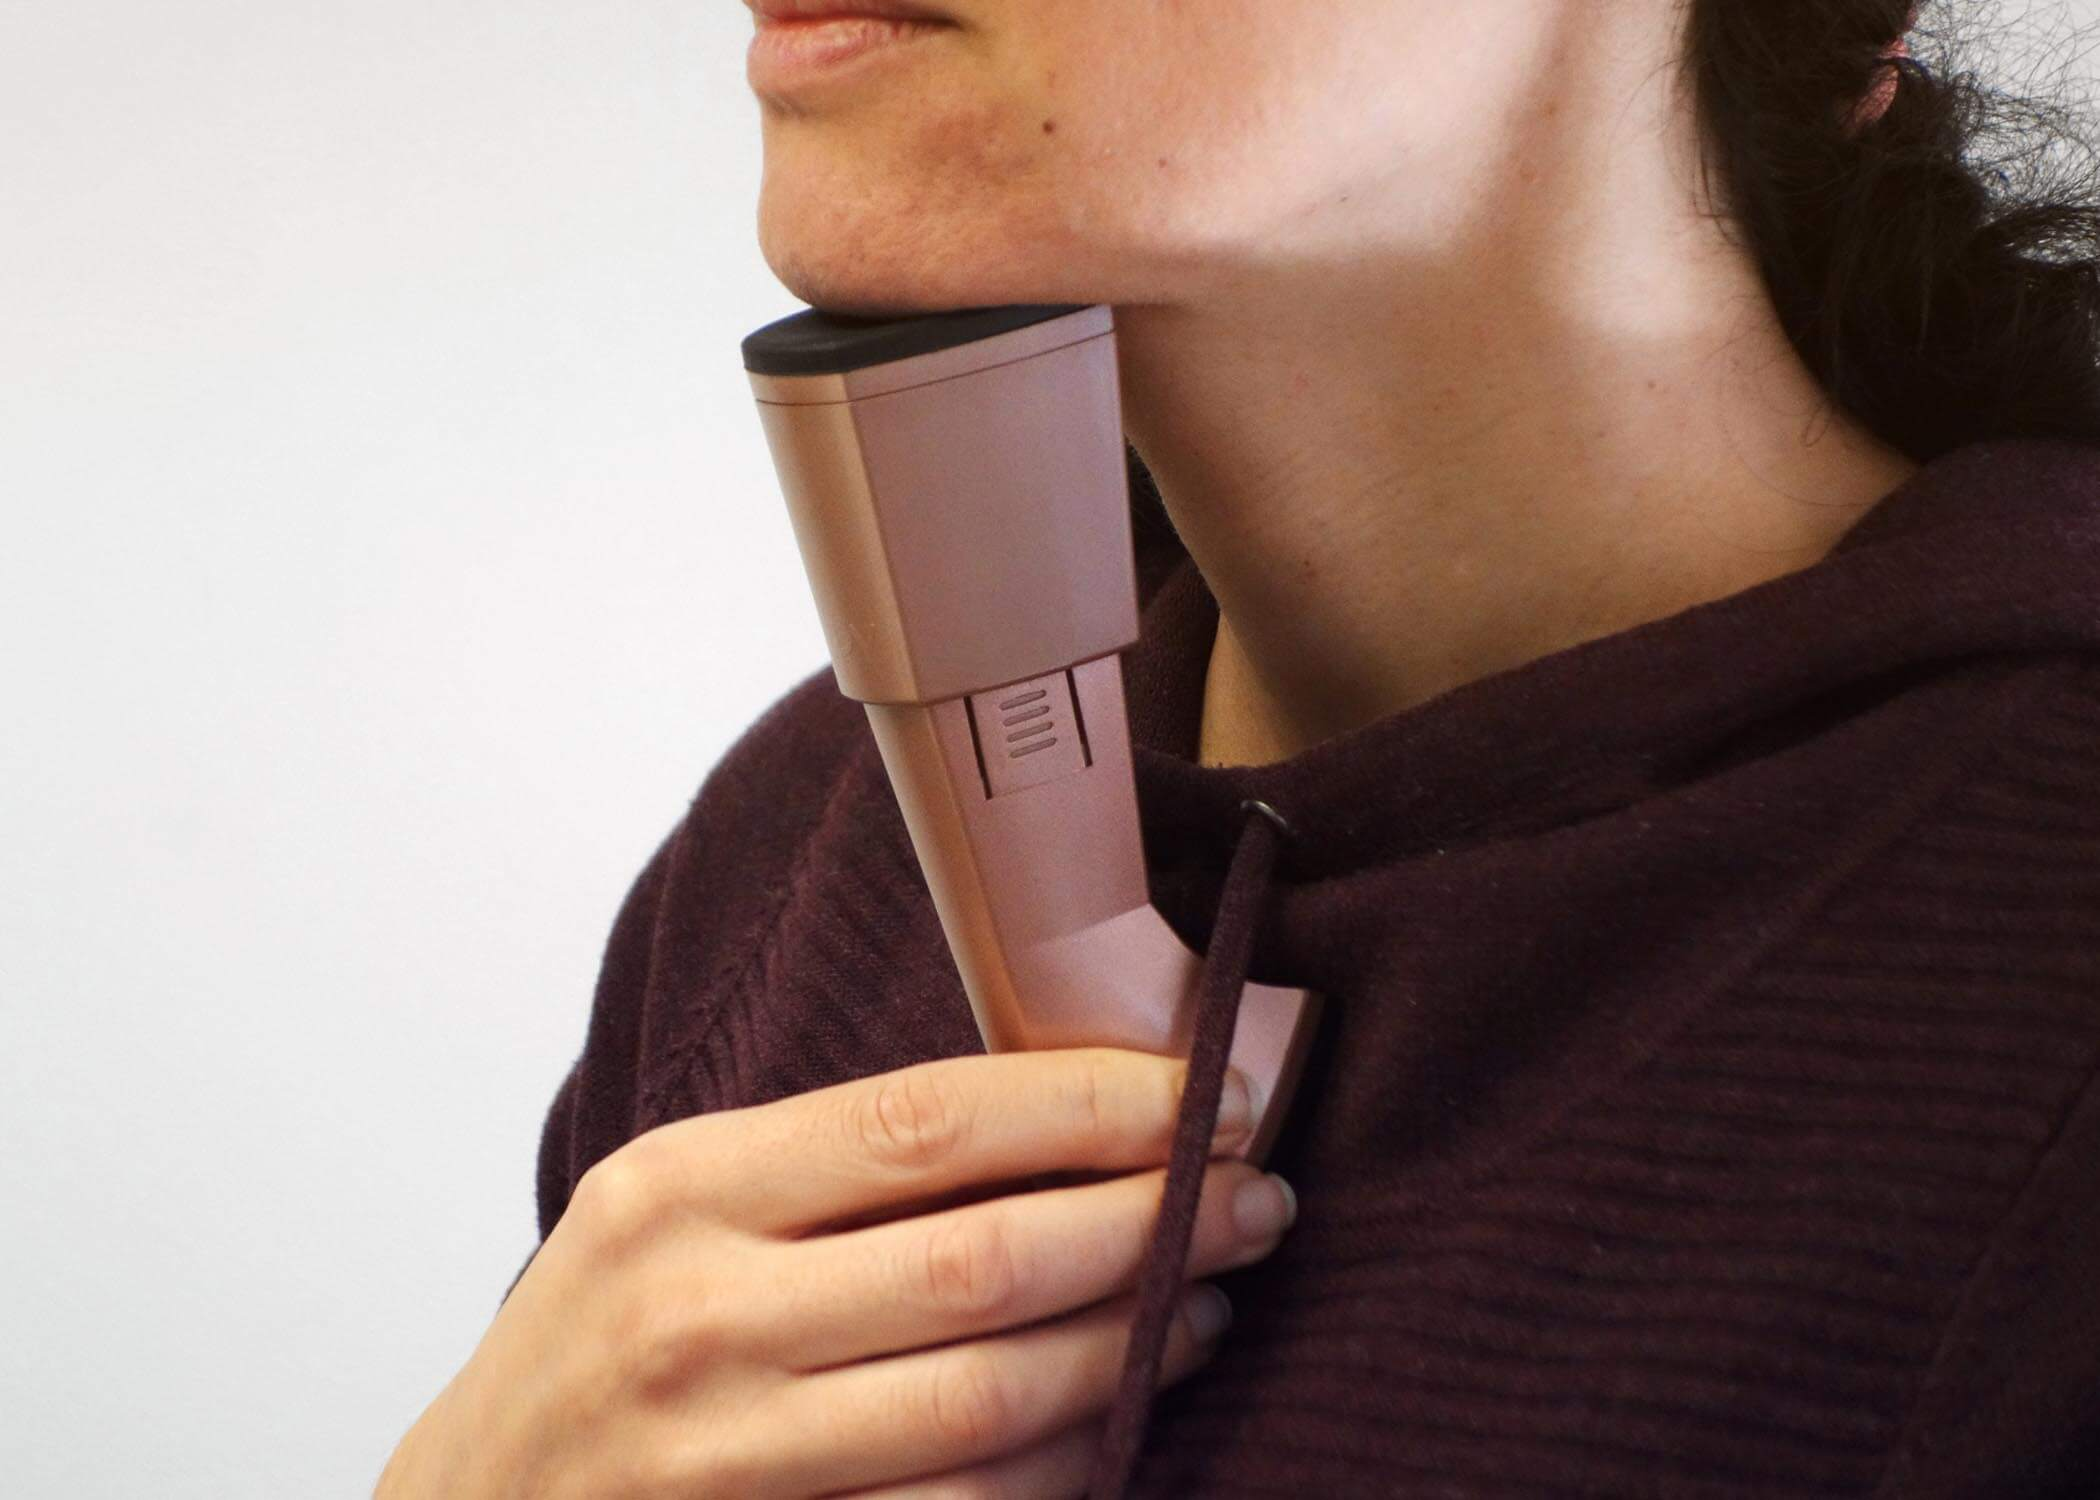 neckline trainer health and beauty product design